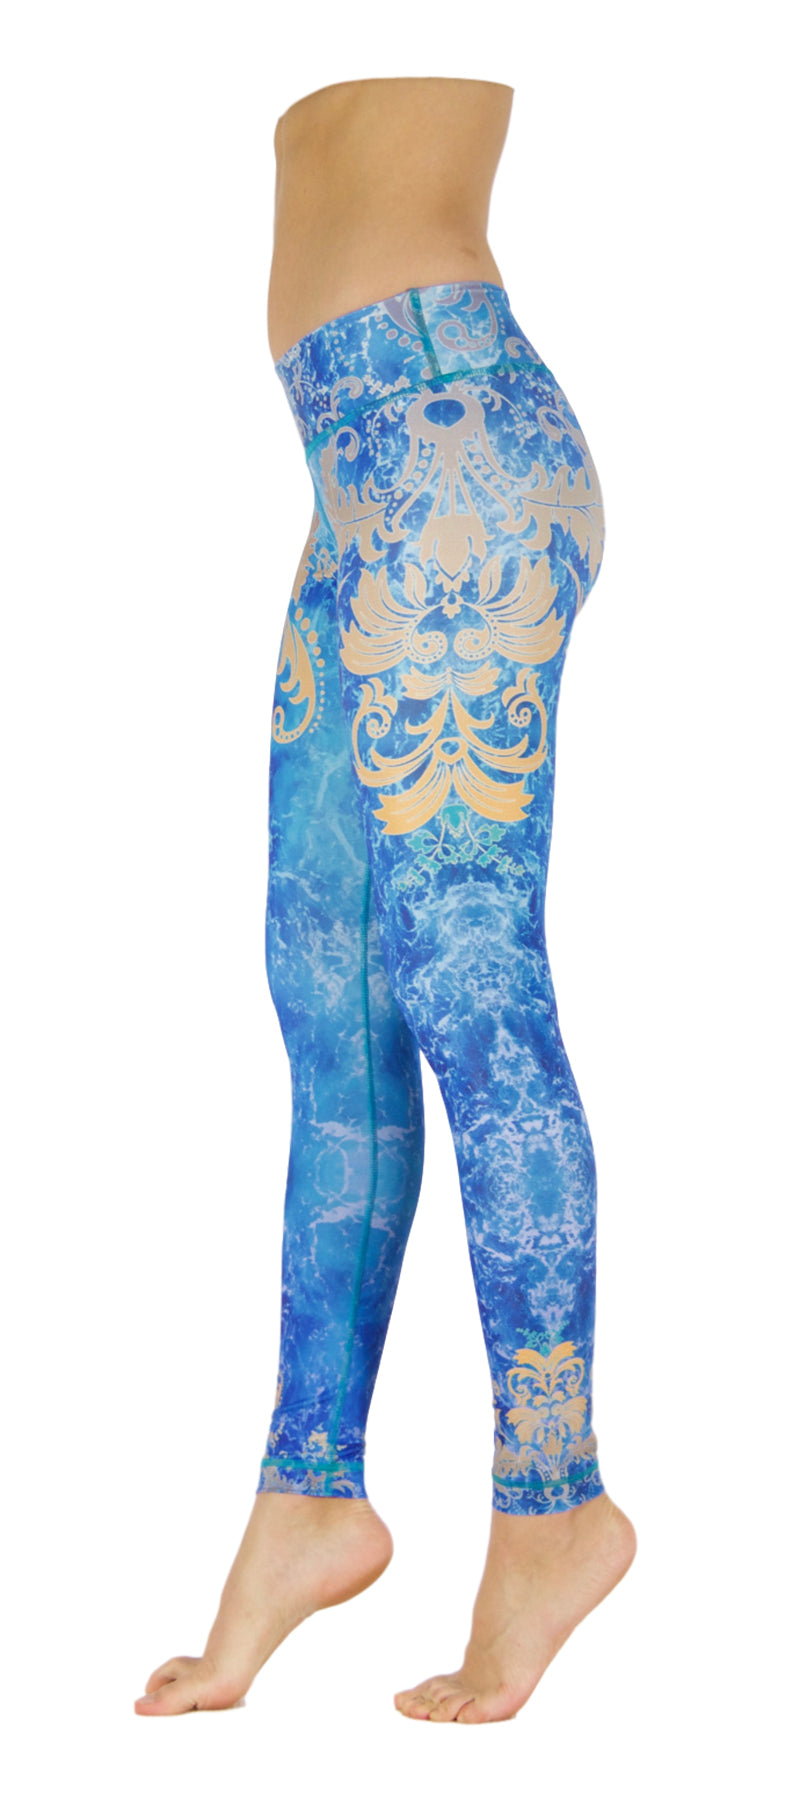 Golden Leaves by Niyama - High Quality, Yoga Legging for Movement Artists.